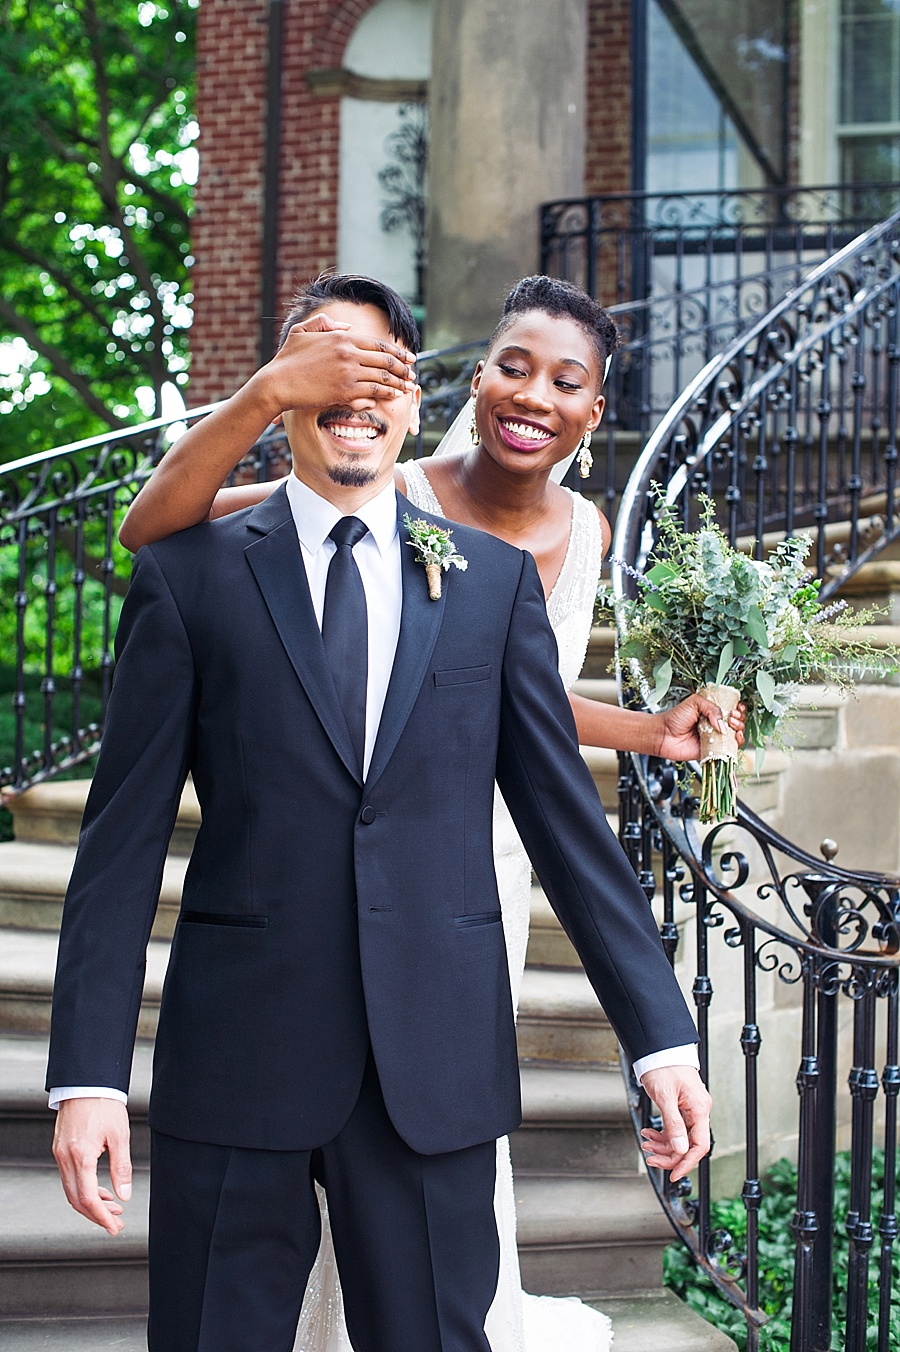 Severin-photography-multicultural-wedding-photographer-chicago-5673.jpg